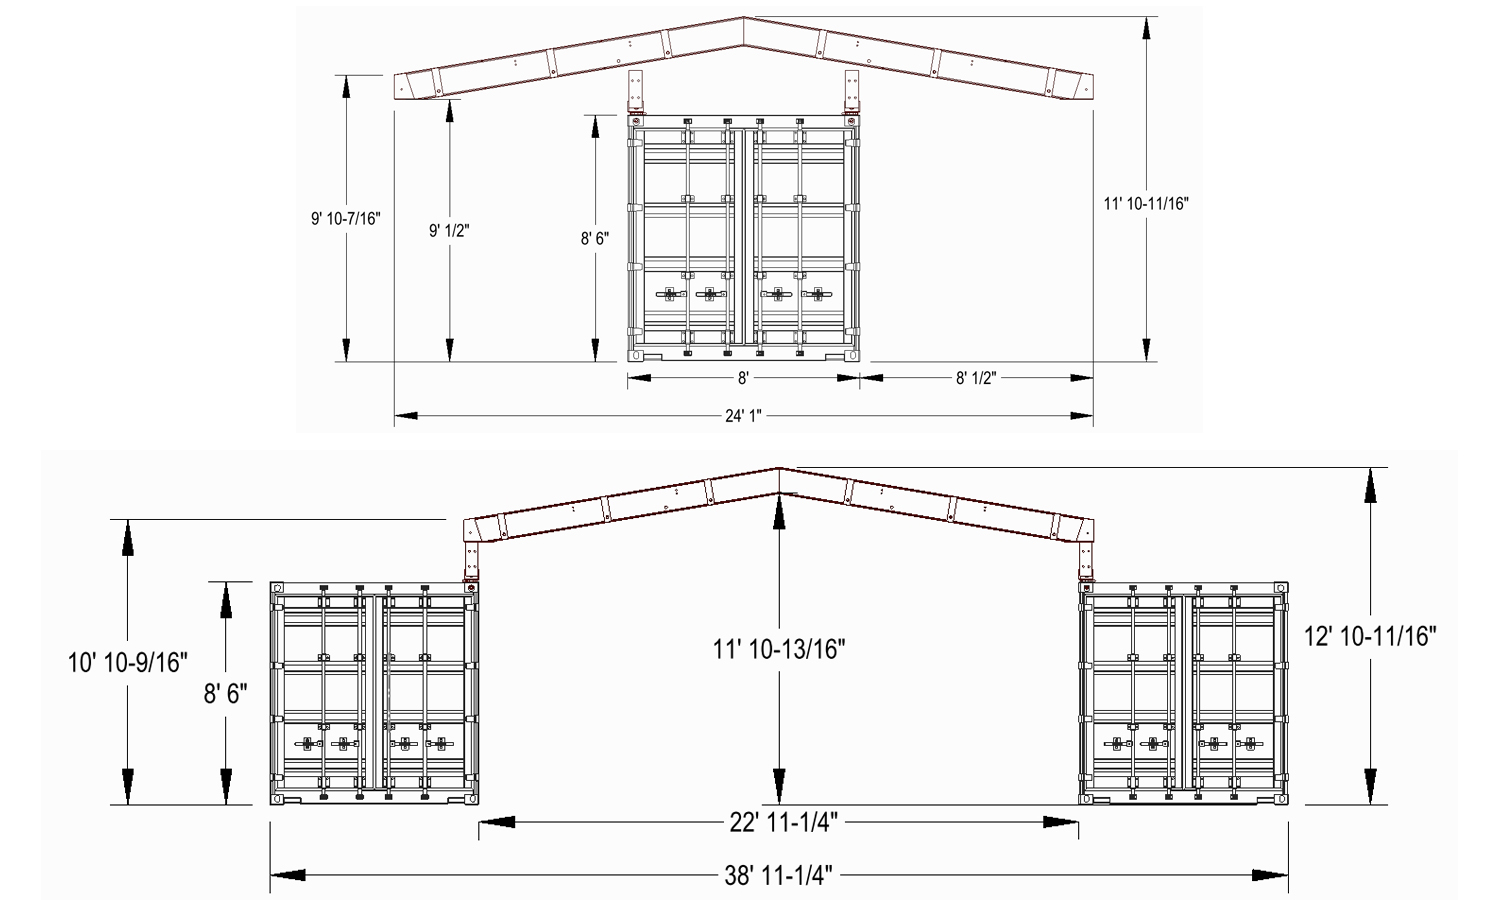 ISO container roof system dimensions